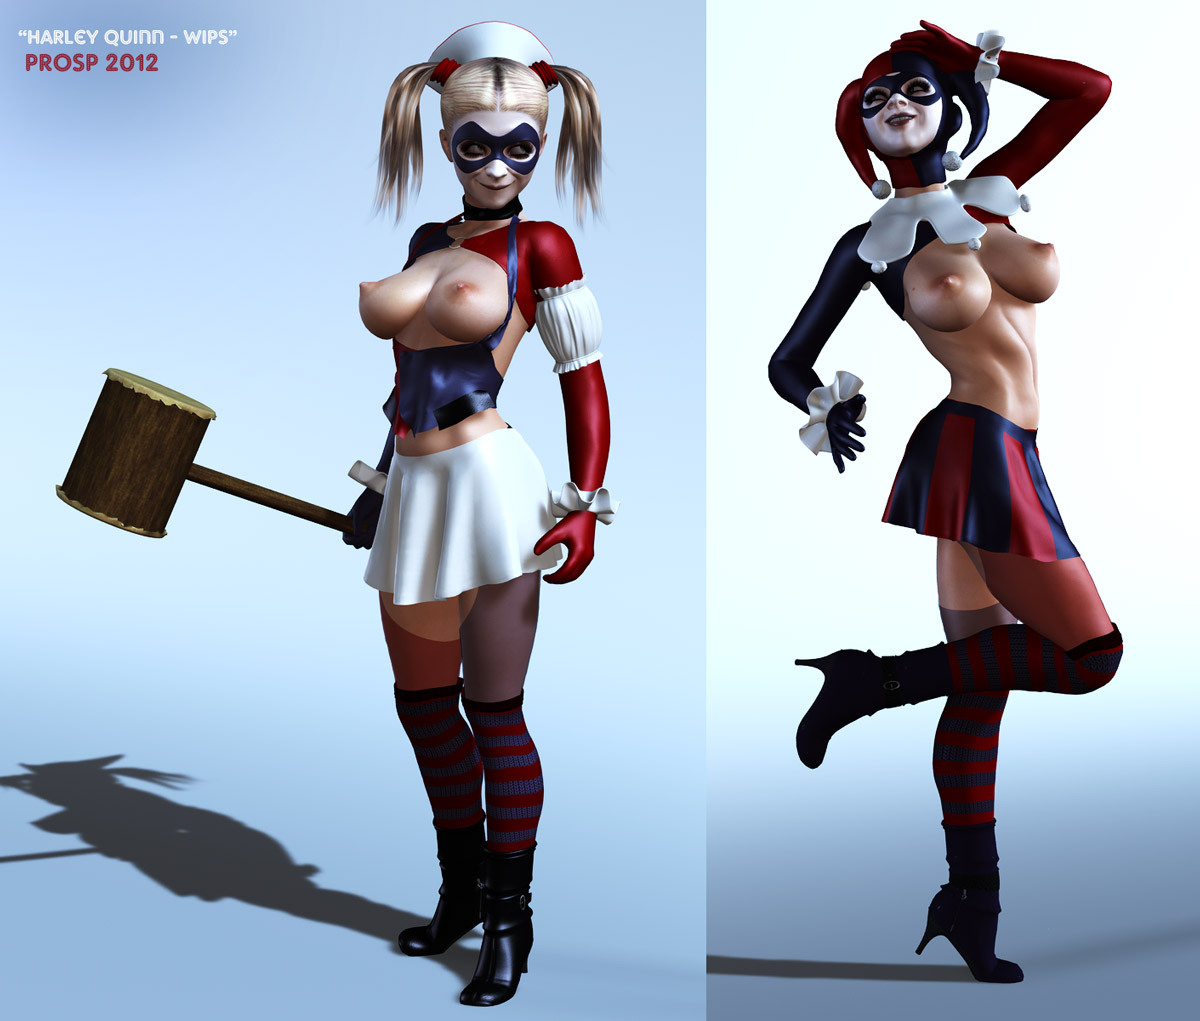 Couple of WIPs of Harley Quinn